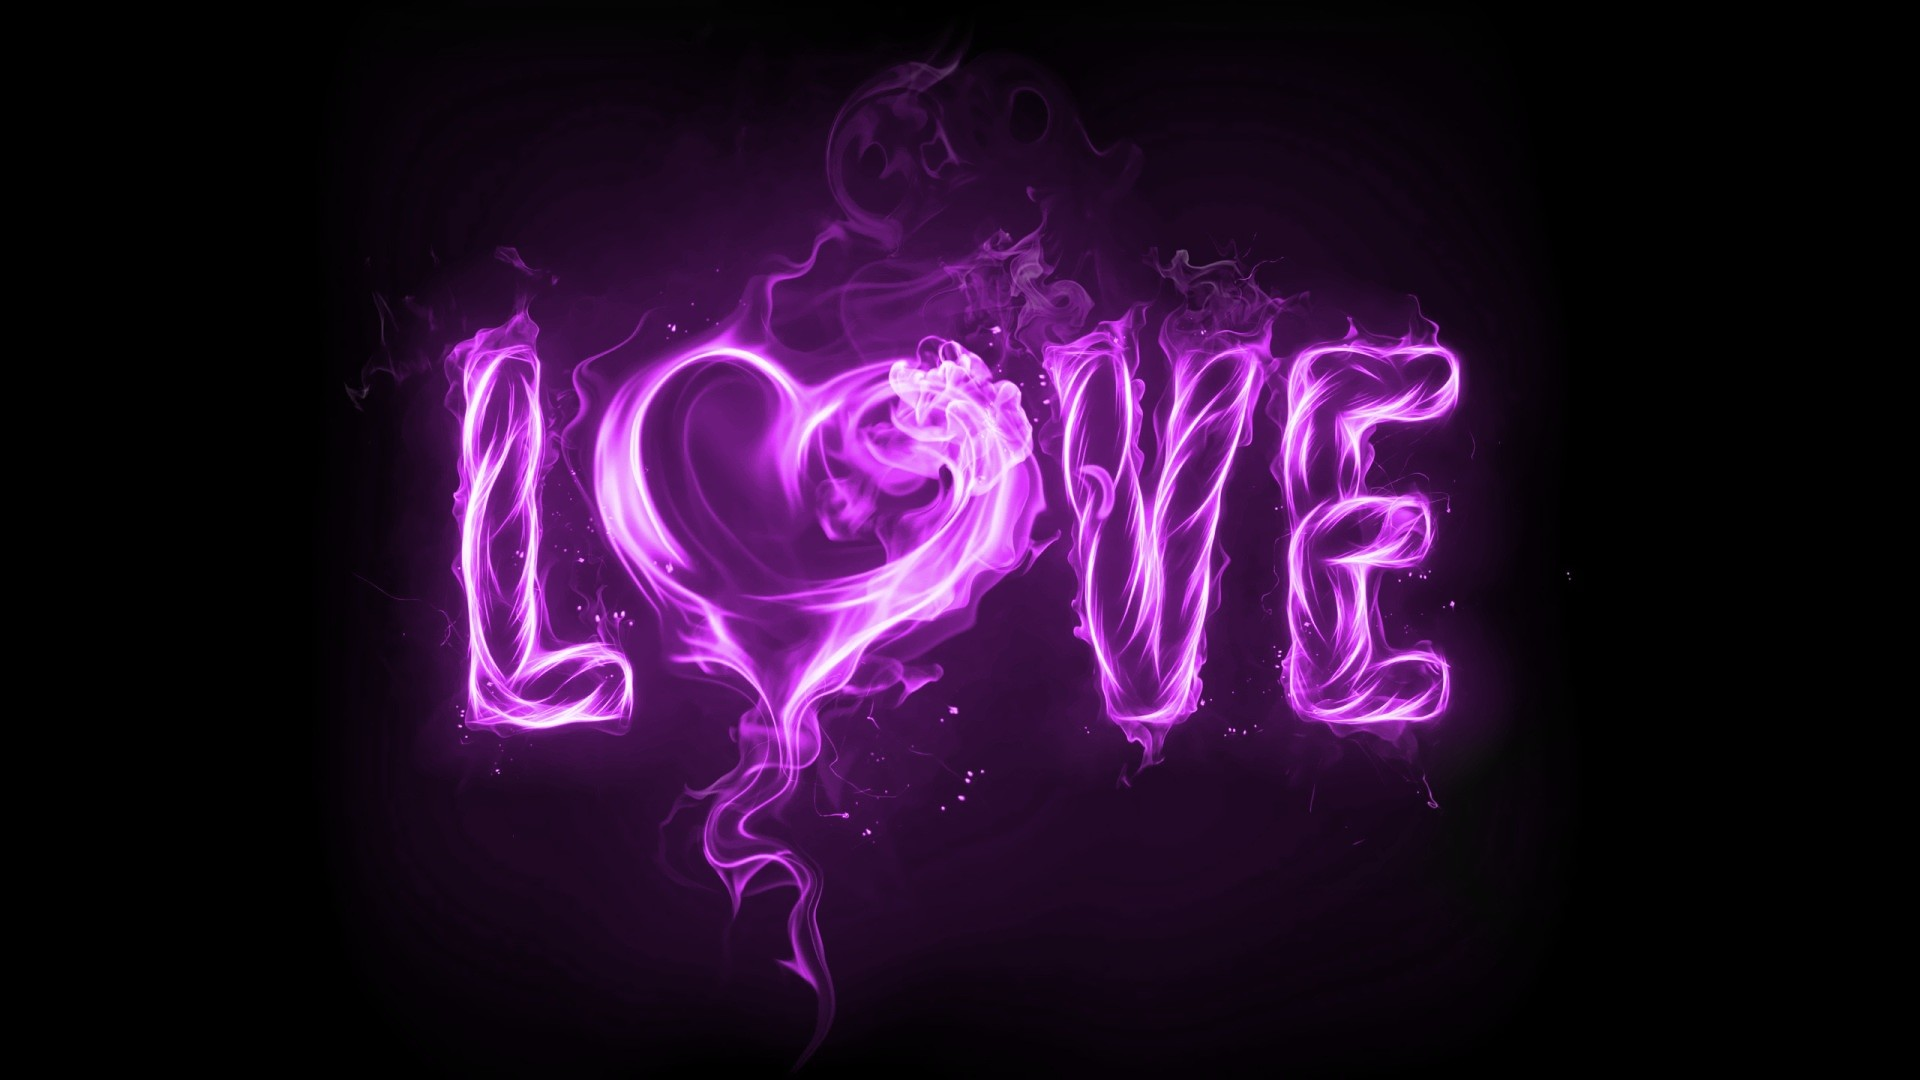 Love Pictures with No Heart | Love Heart Wallpaper | share | Pinterest |  Wallpaper